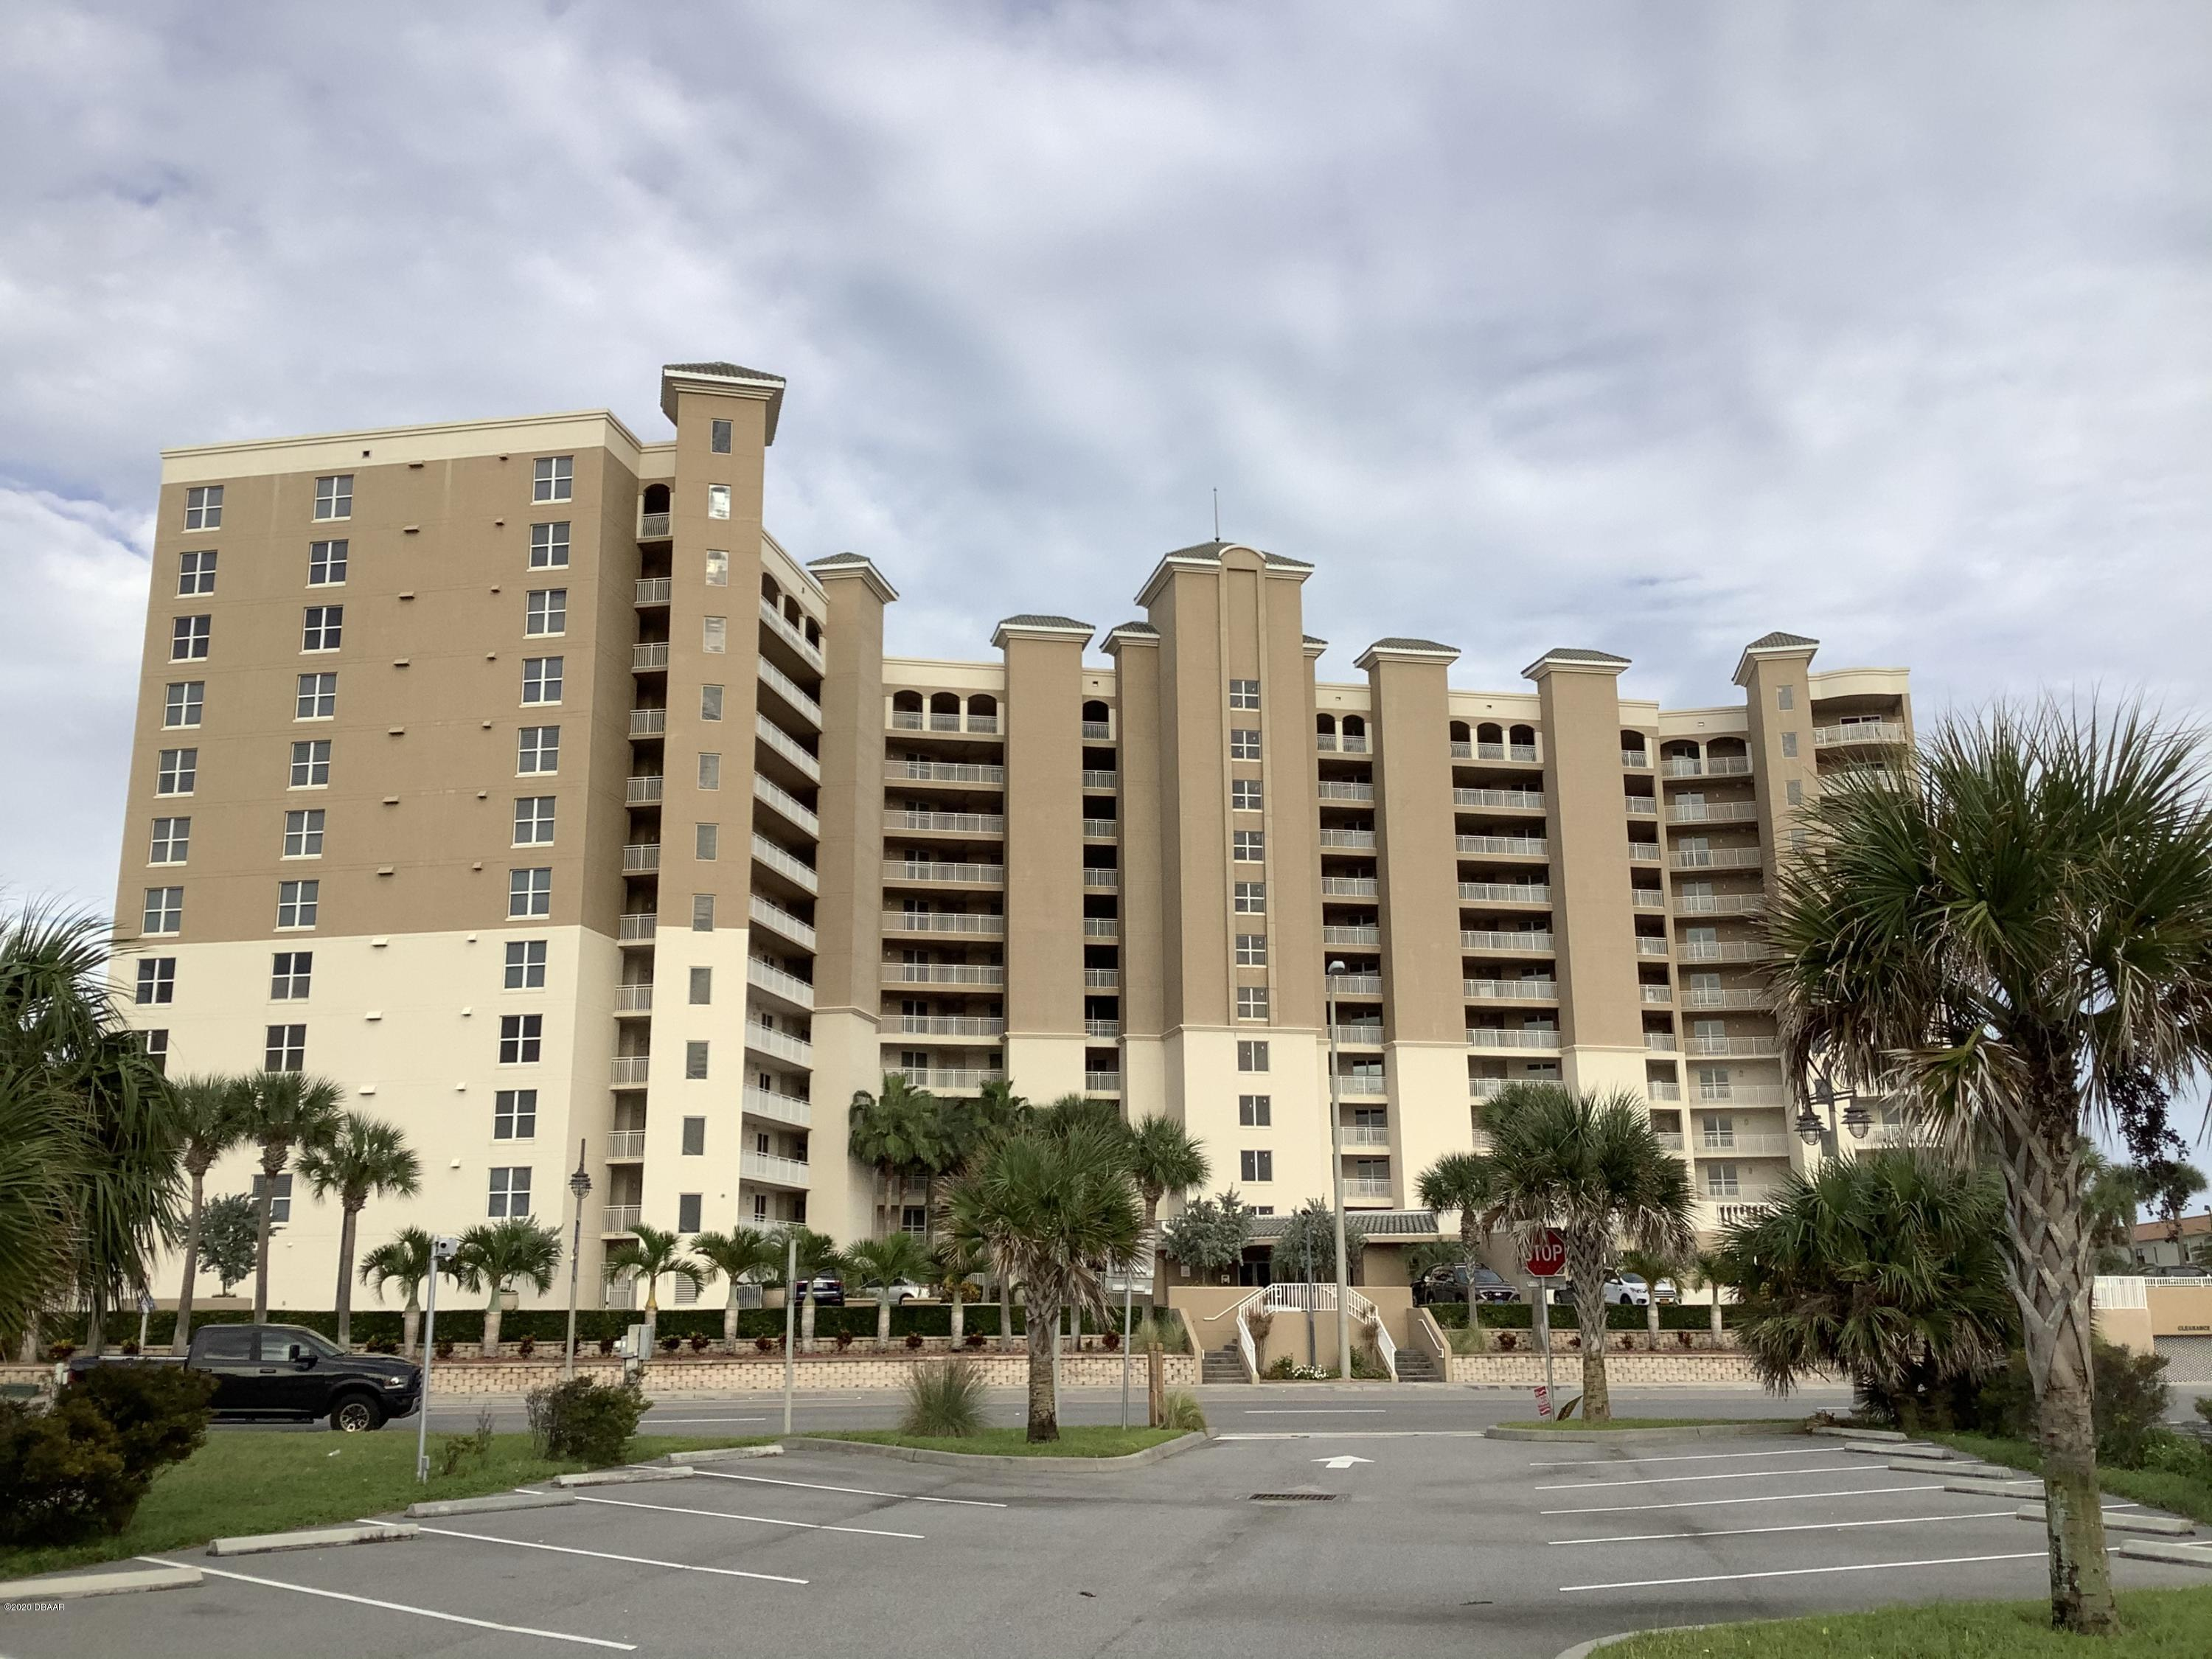 Photo of 2403 S Atlantic Avenue #211, Daytona Beach Shores, FL 32118